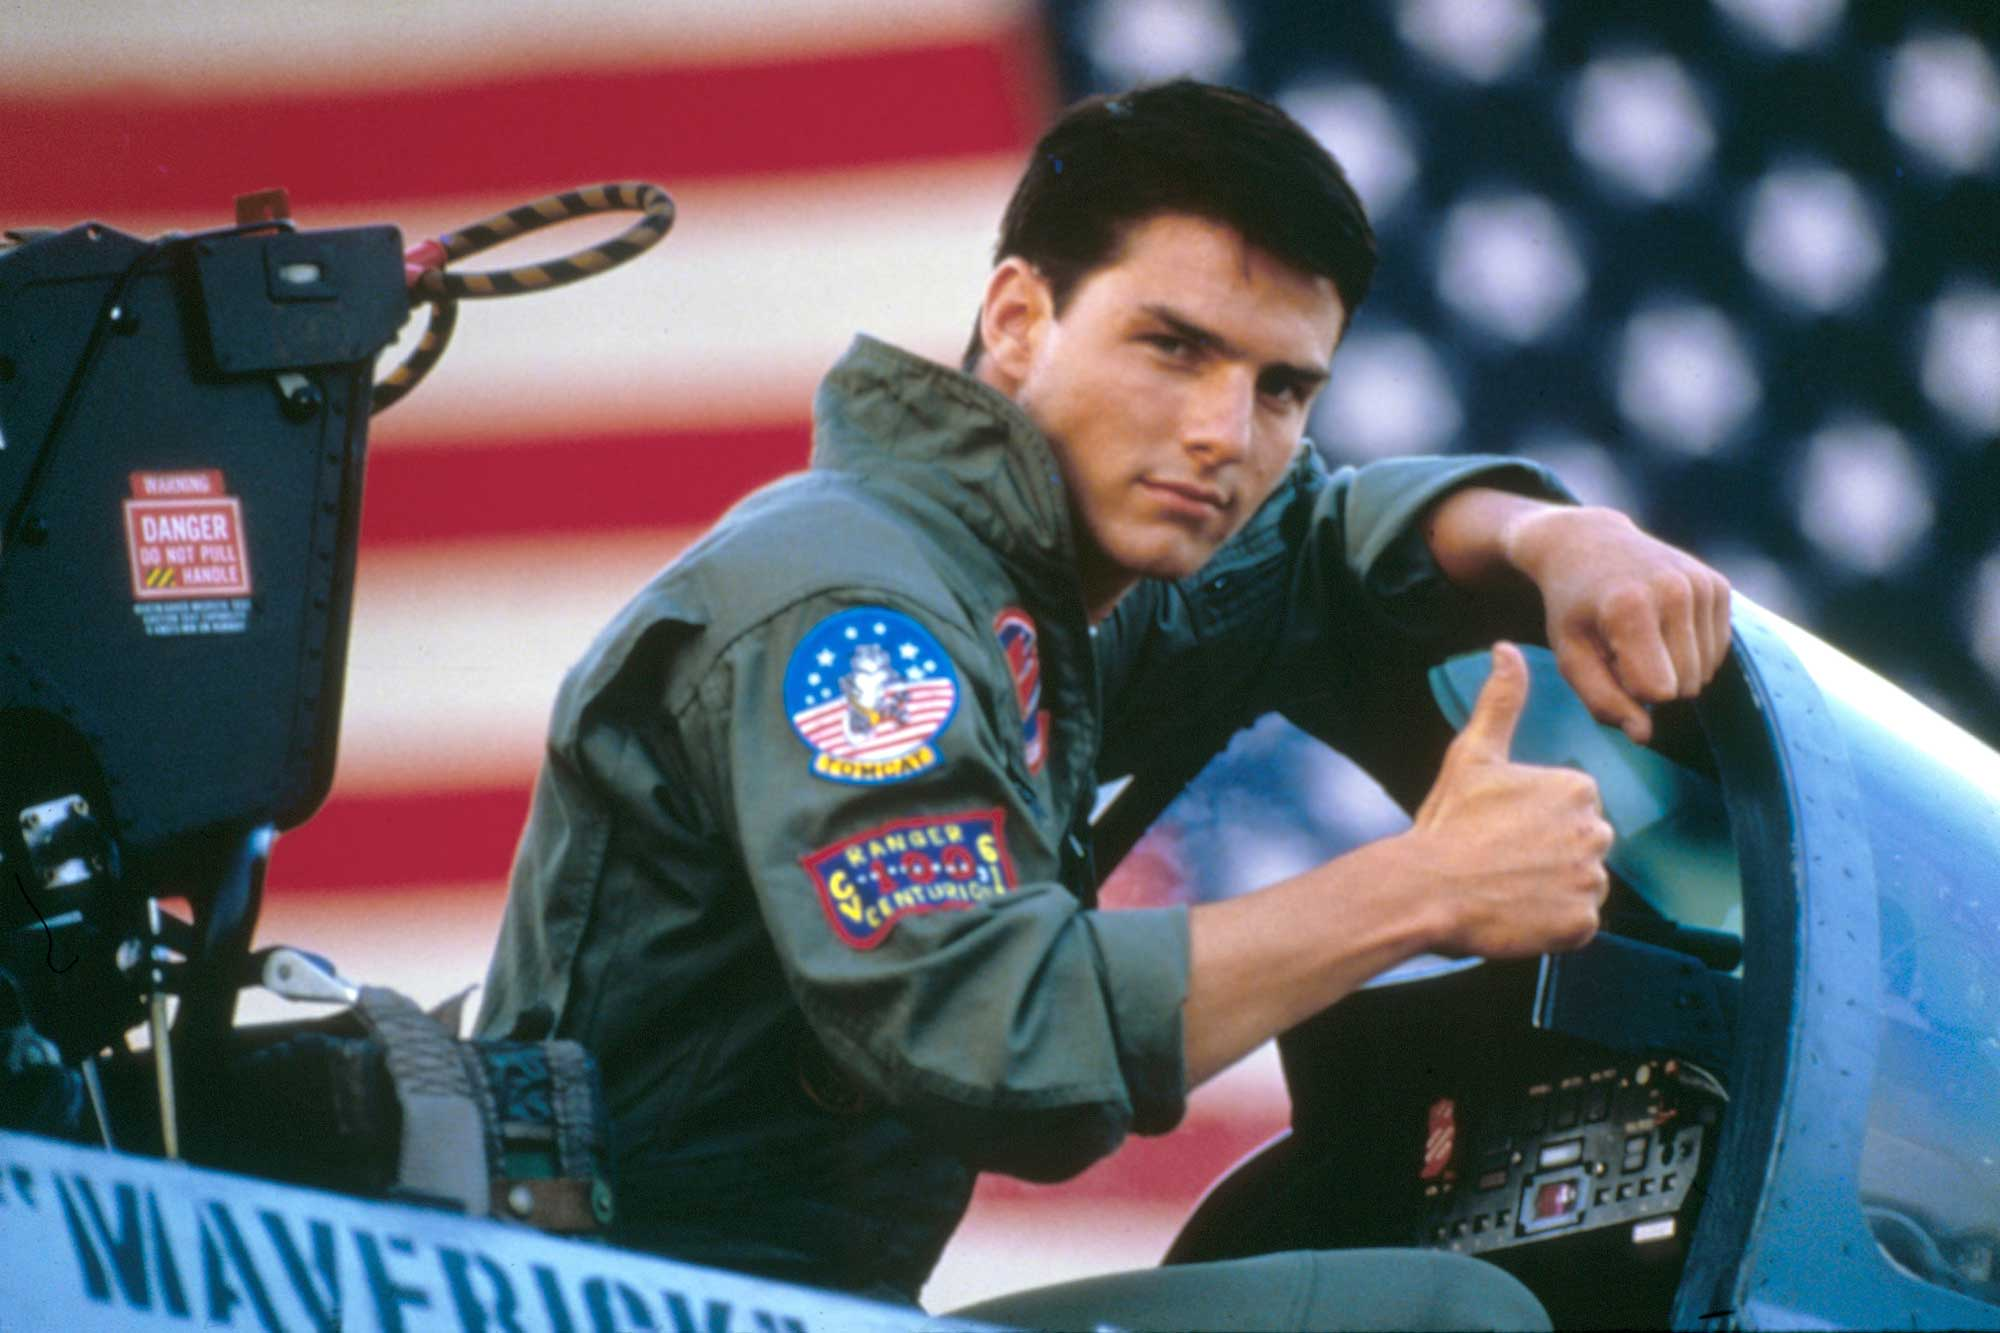 Tom Cruise's jacket in the 'Top Gun' sequel shows just how crucial China is to the US film industry thumbnail